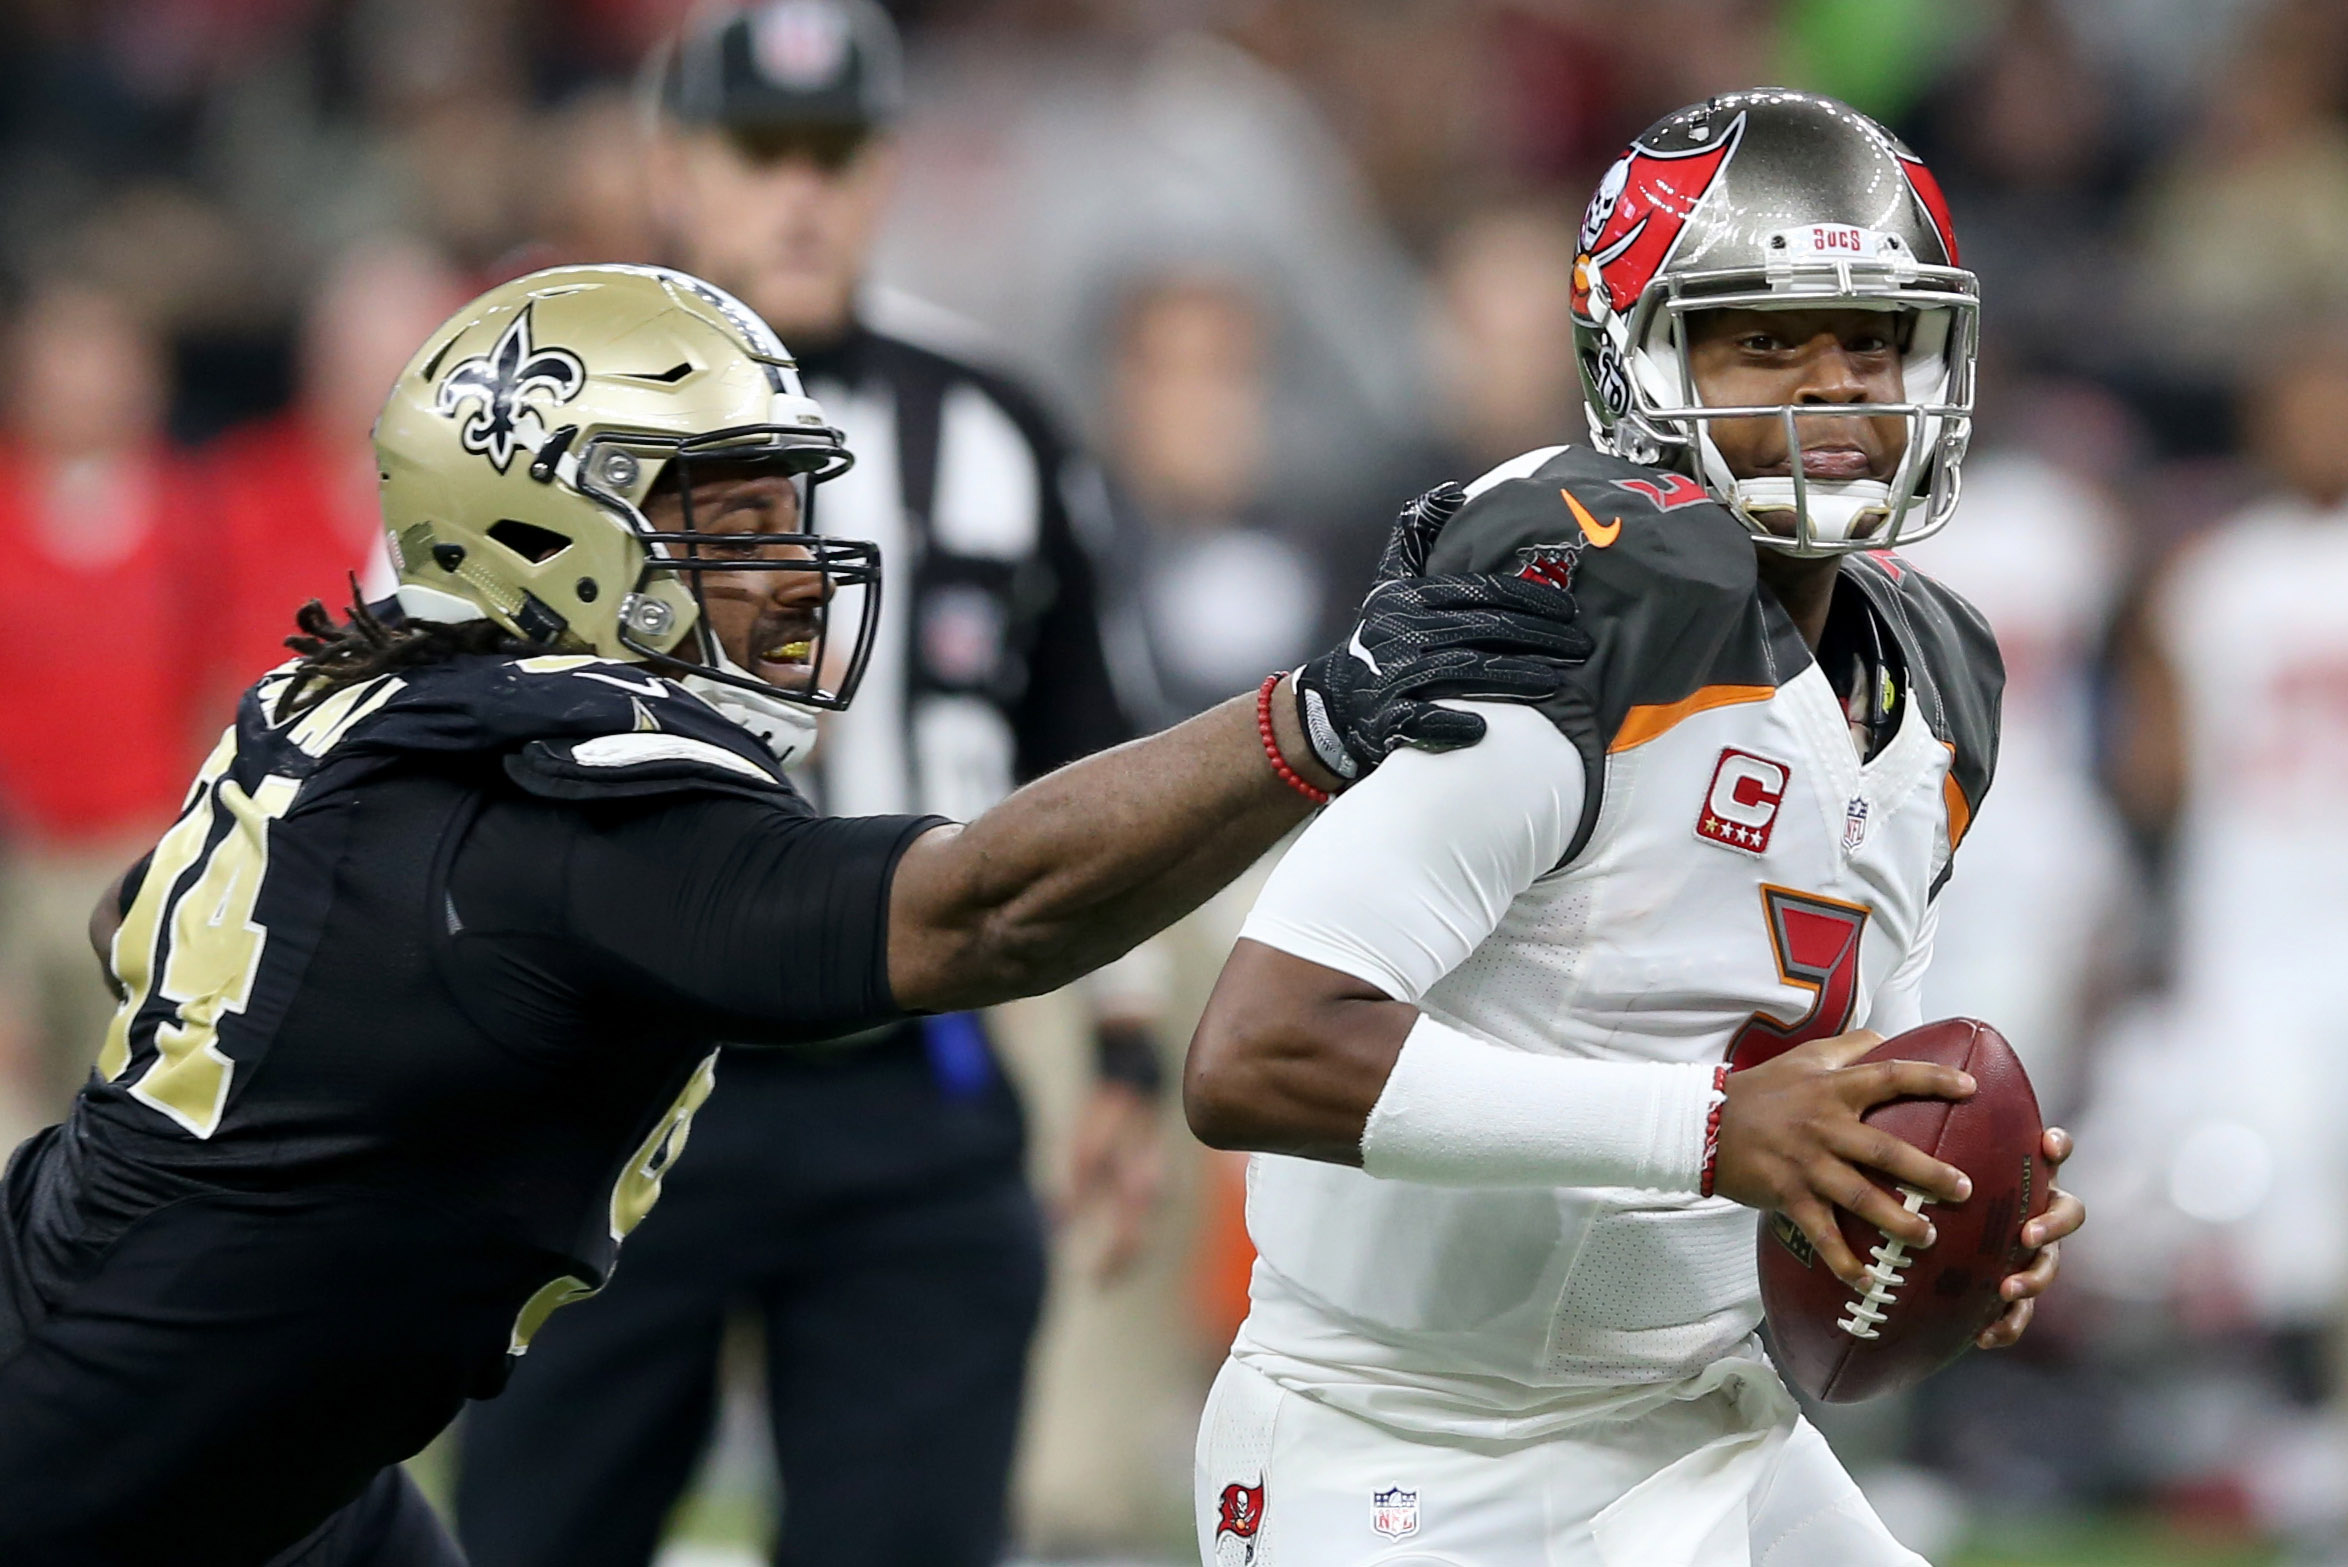 9767677-nfl-tampa-bay-buccaneers-at-new-orleans-saints